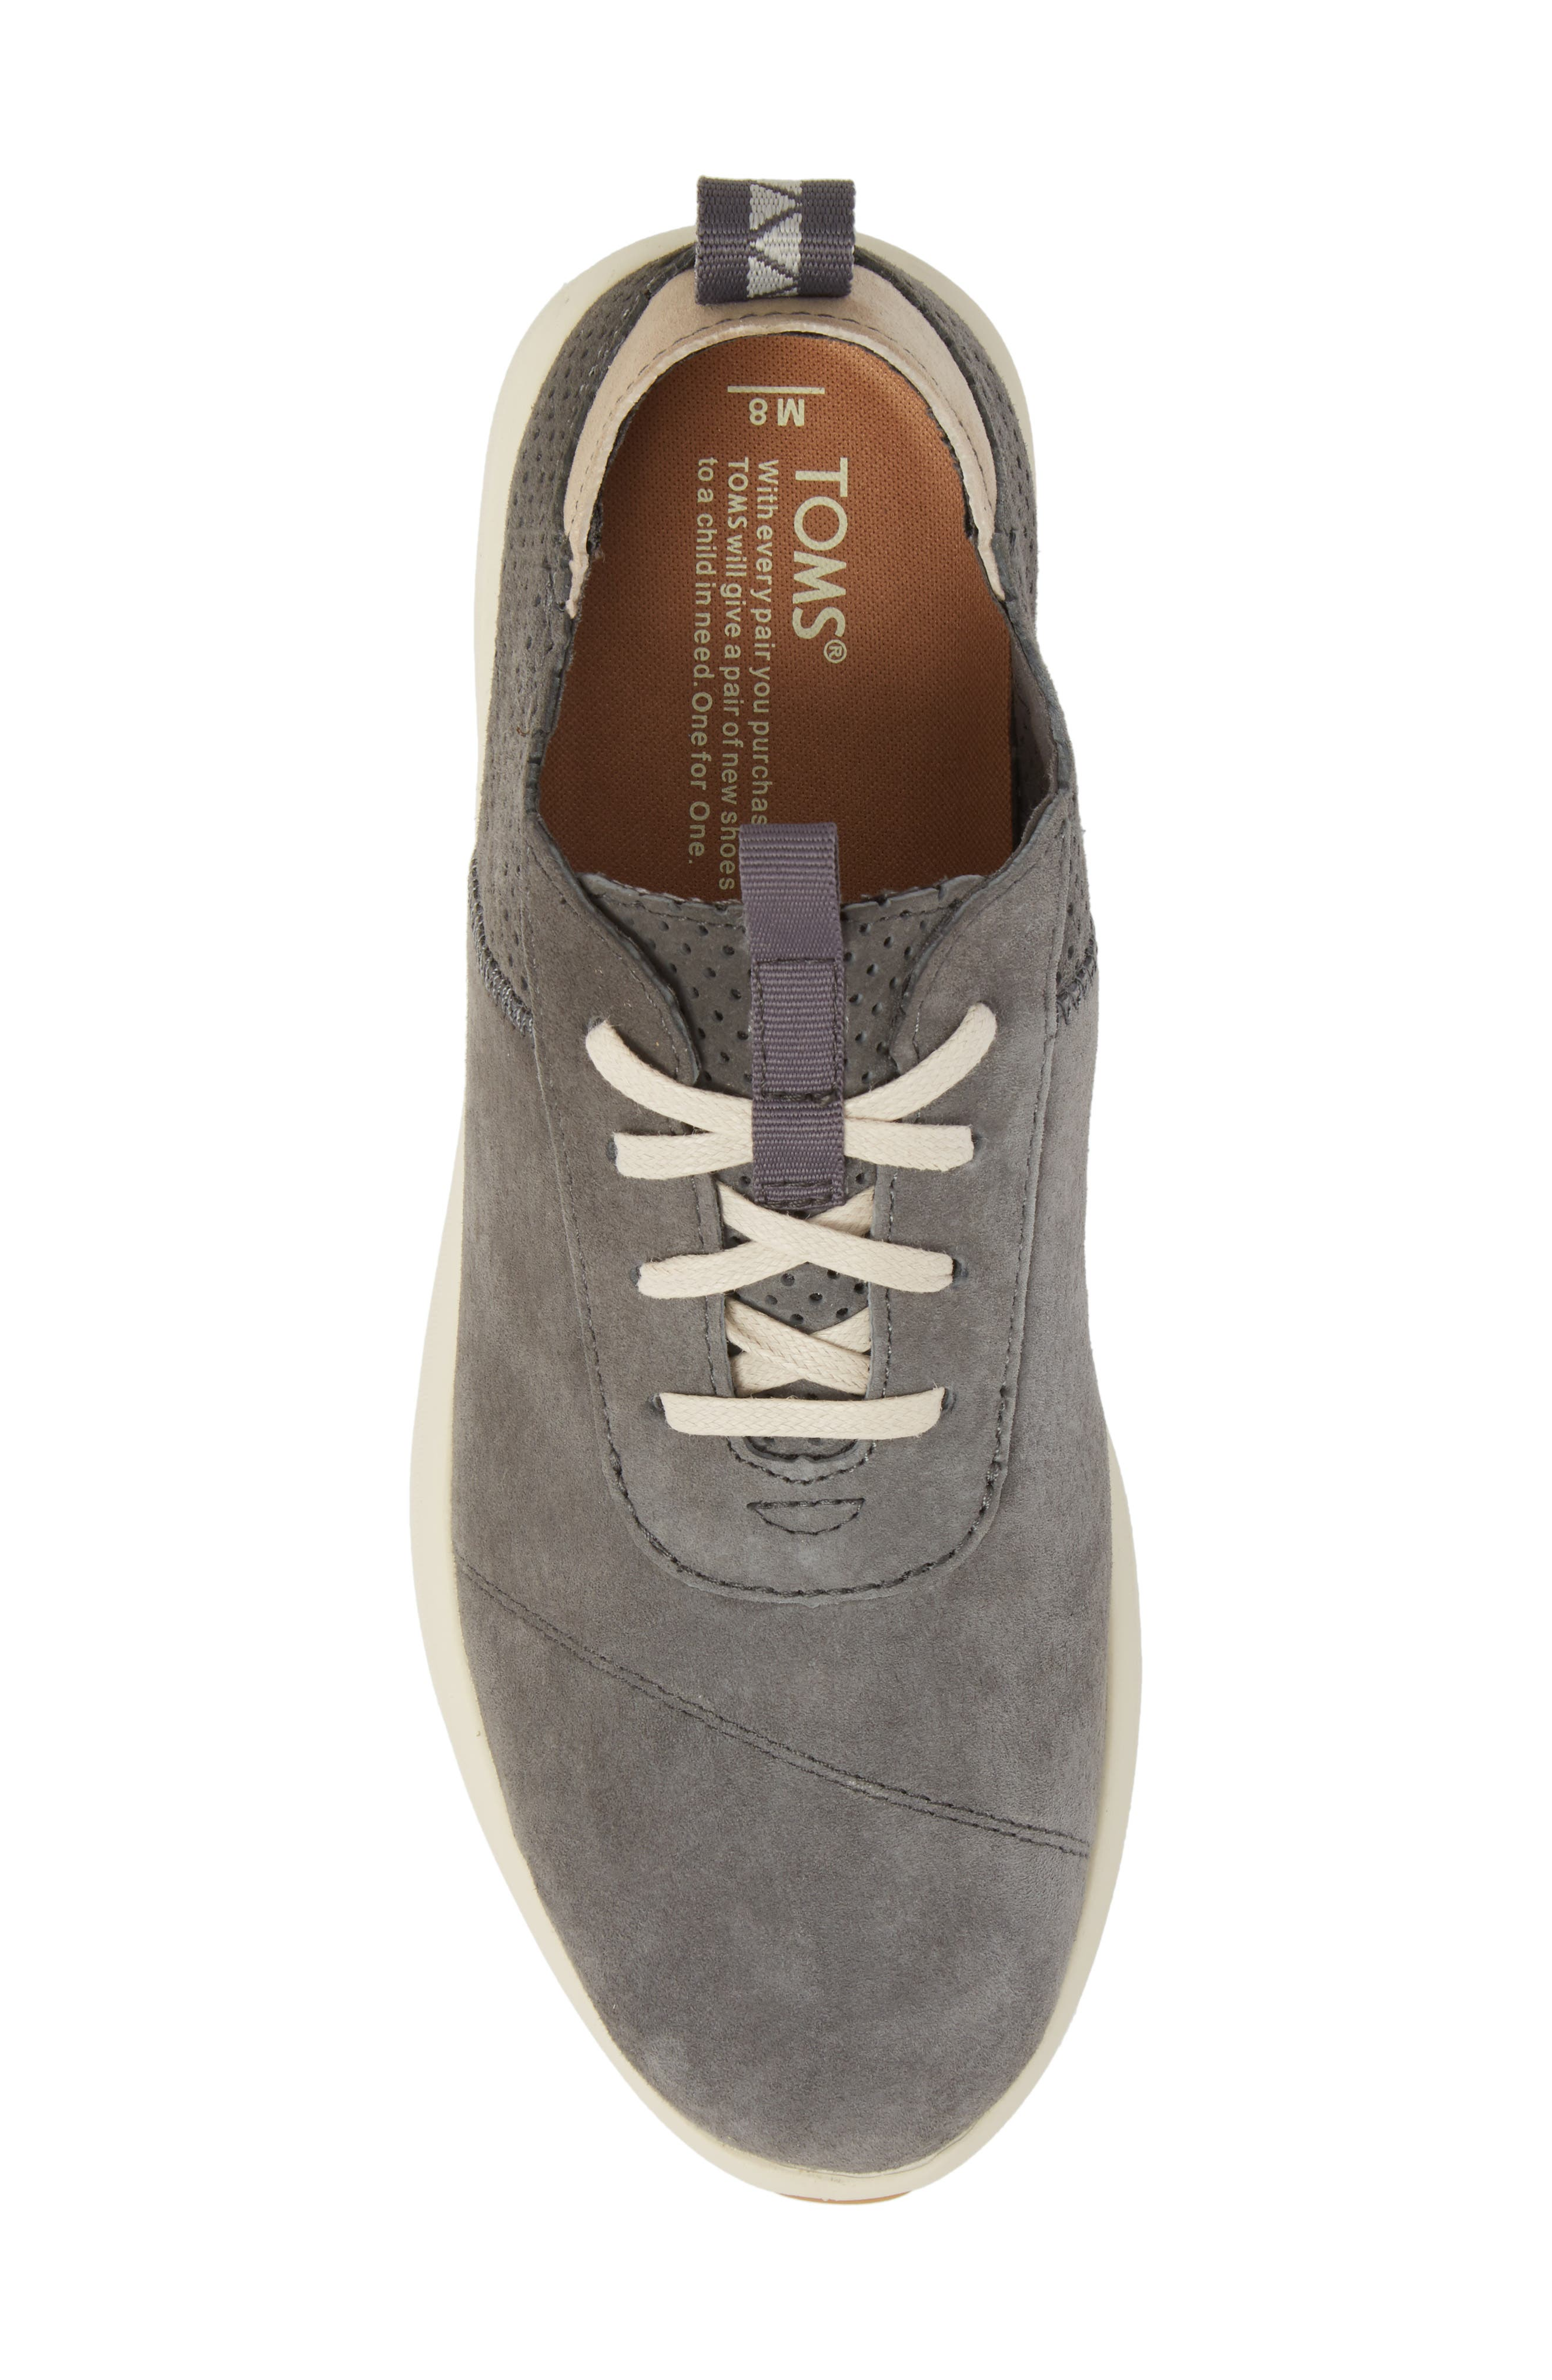 Cabrillo Perforated Low Top Sneaker,                             Alternate thumbnail 5, color,                             021